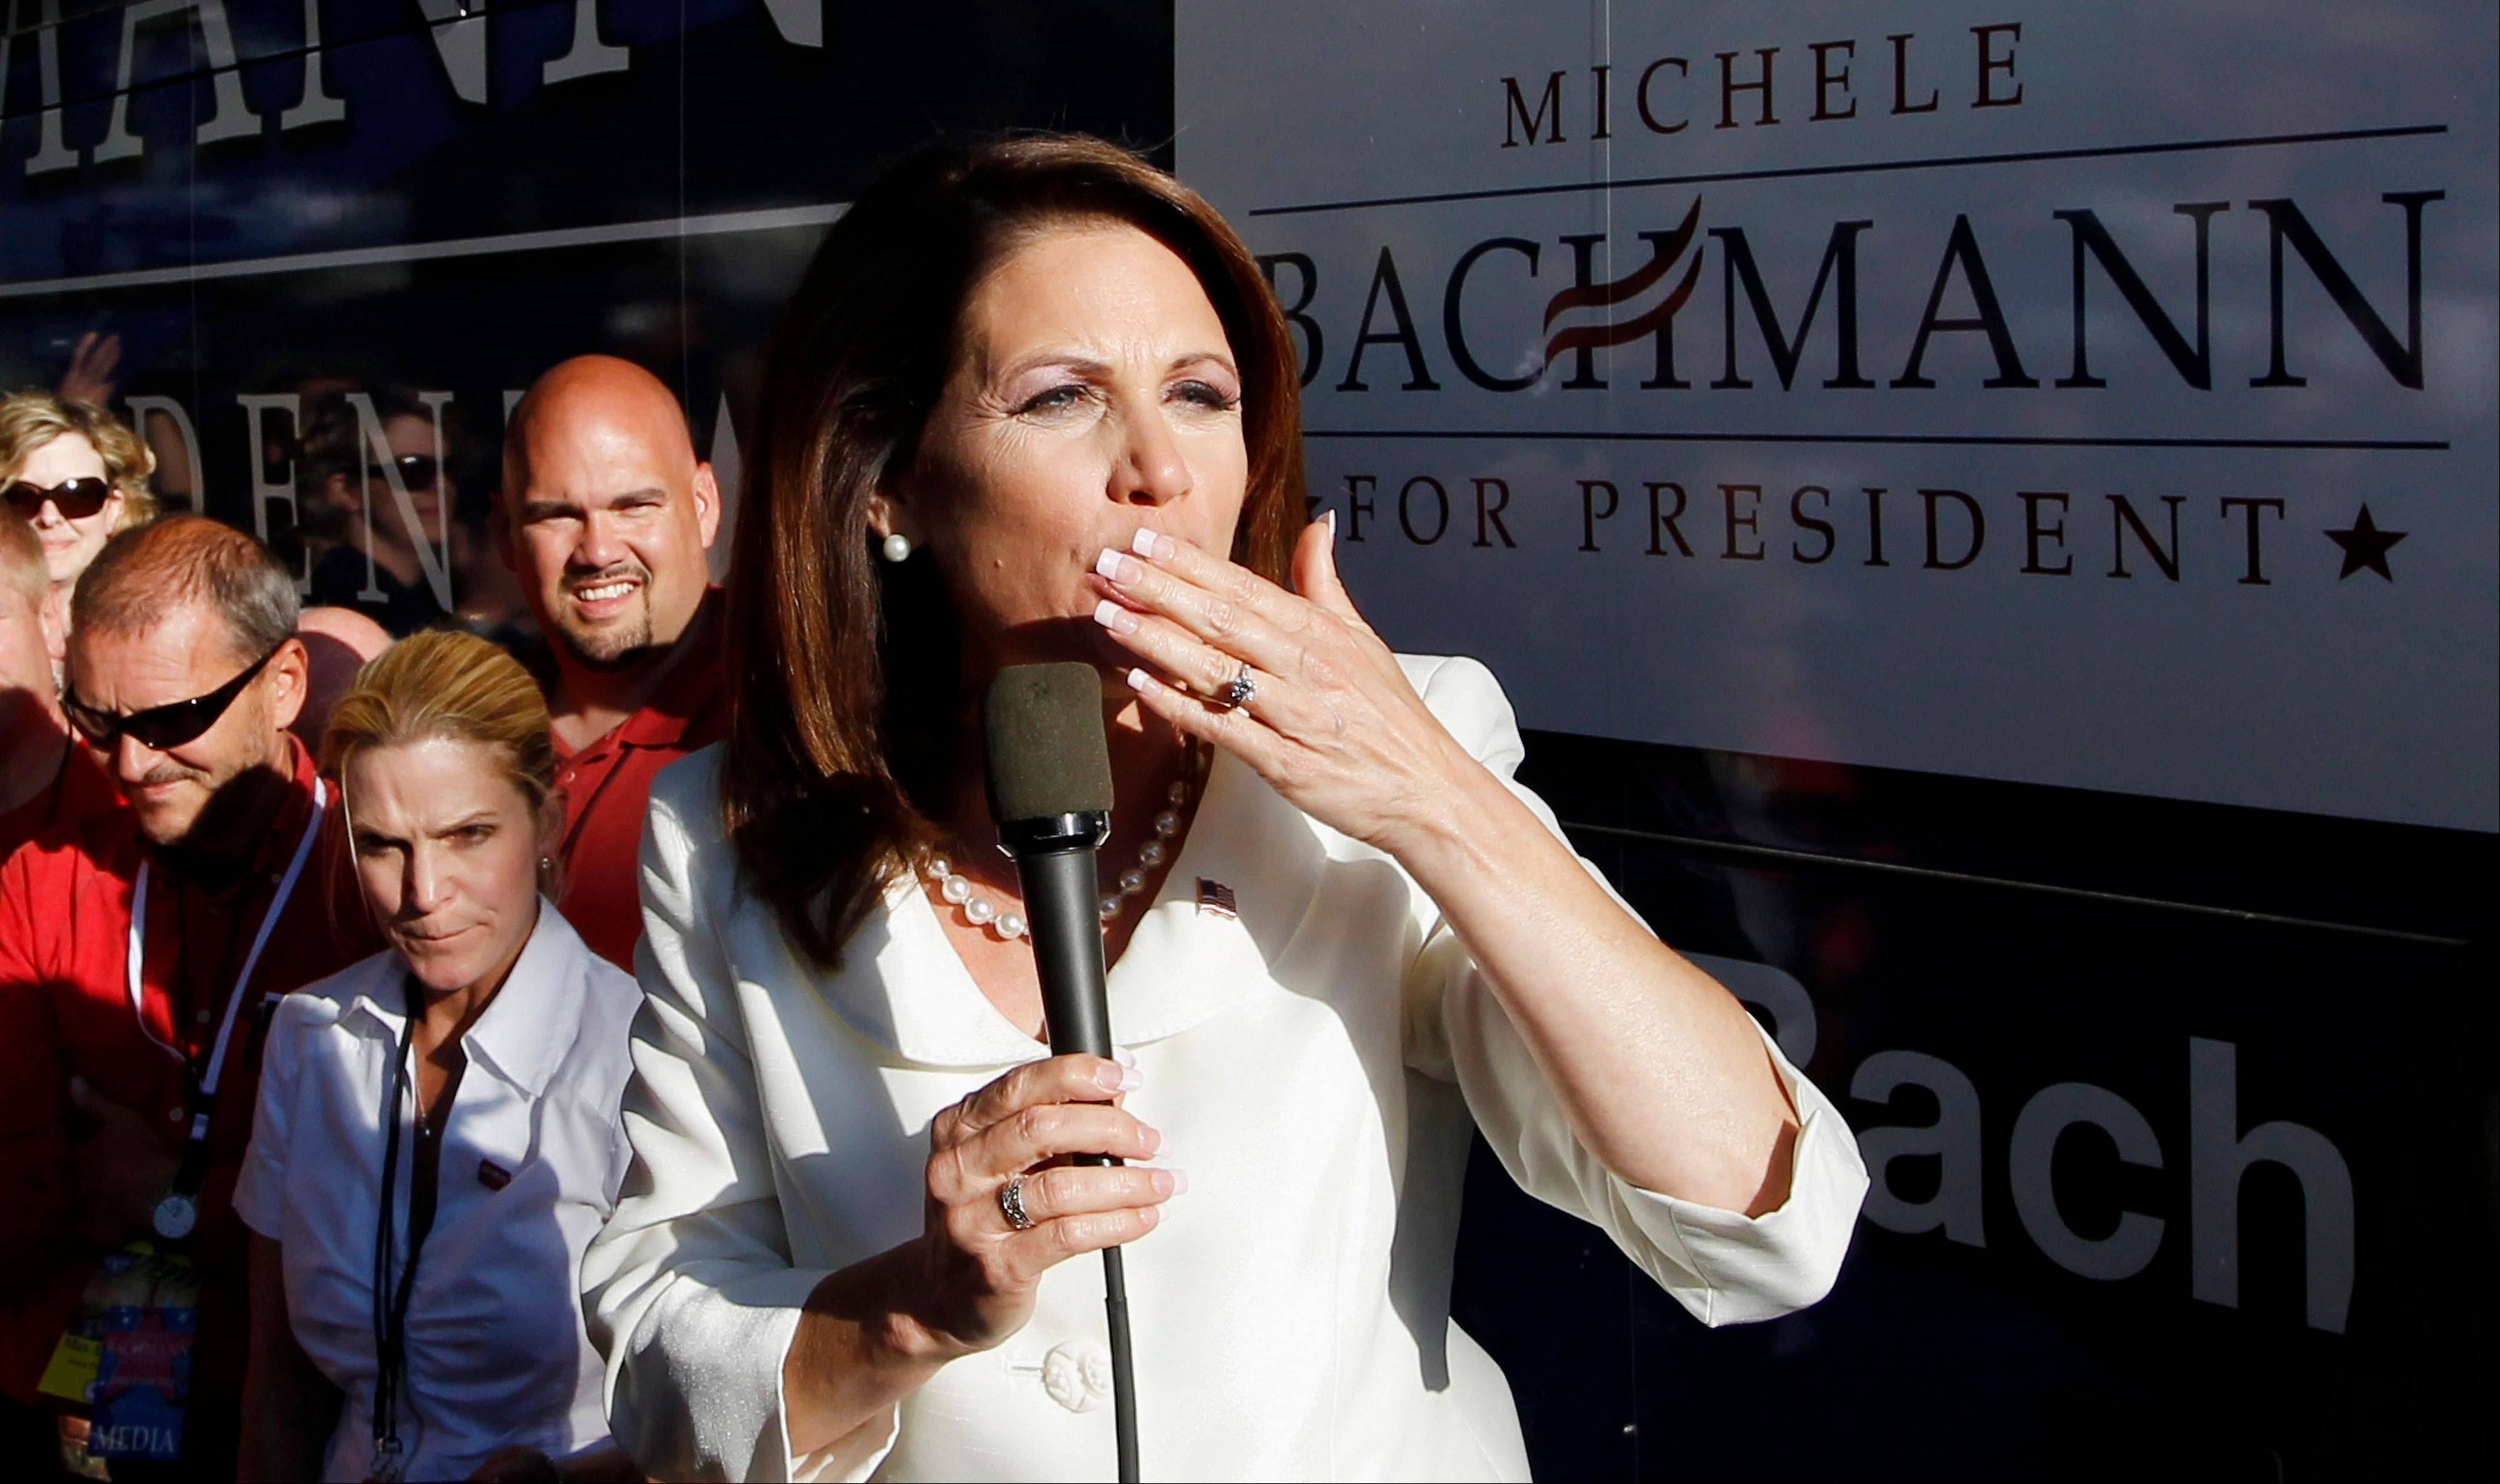 Republican presidential candidate Rep. Michele Bachmann, R-Minn., blows kisses as she speaks to her supporters after winning the Iowa Republican Party�s Straw Poll in Ames, Iowa, Saturday, Aug. 13, 2011.